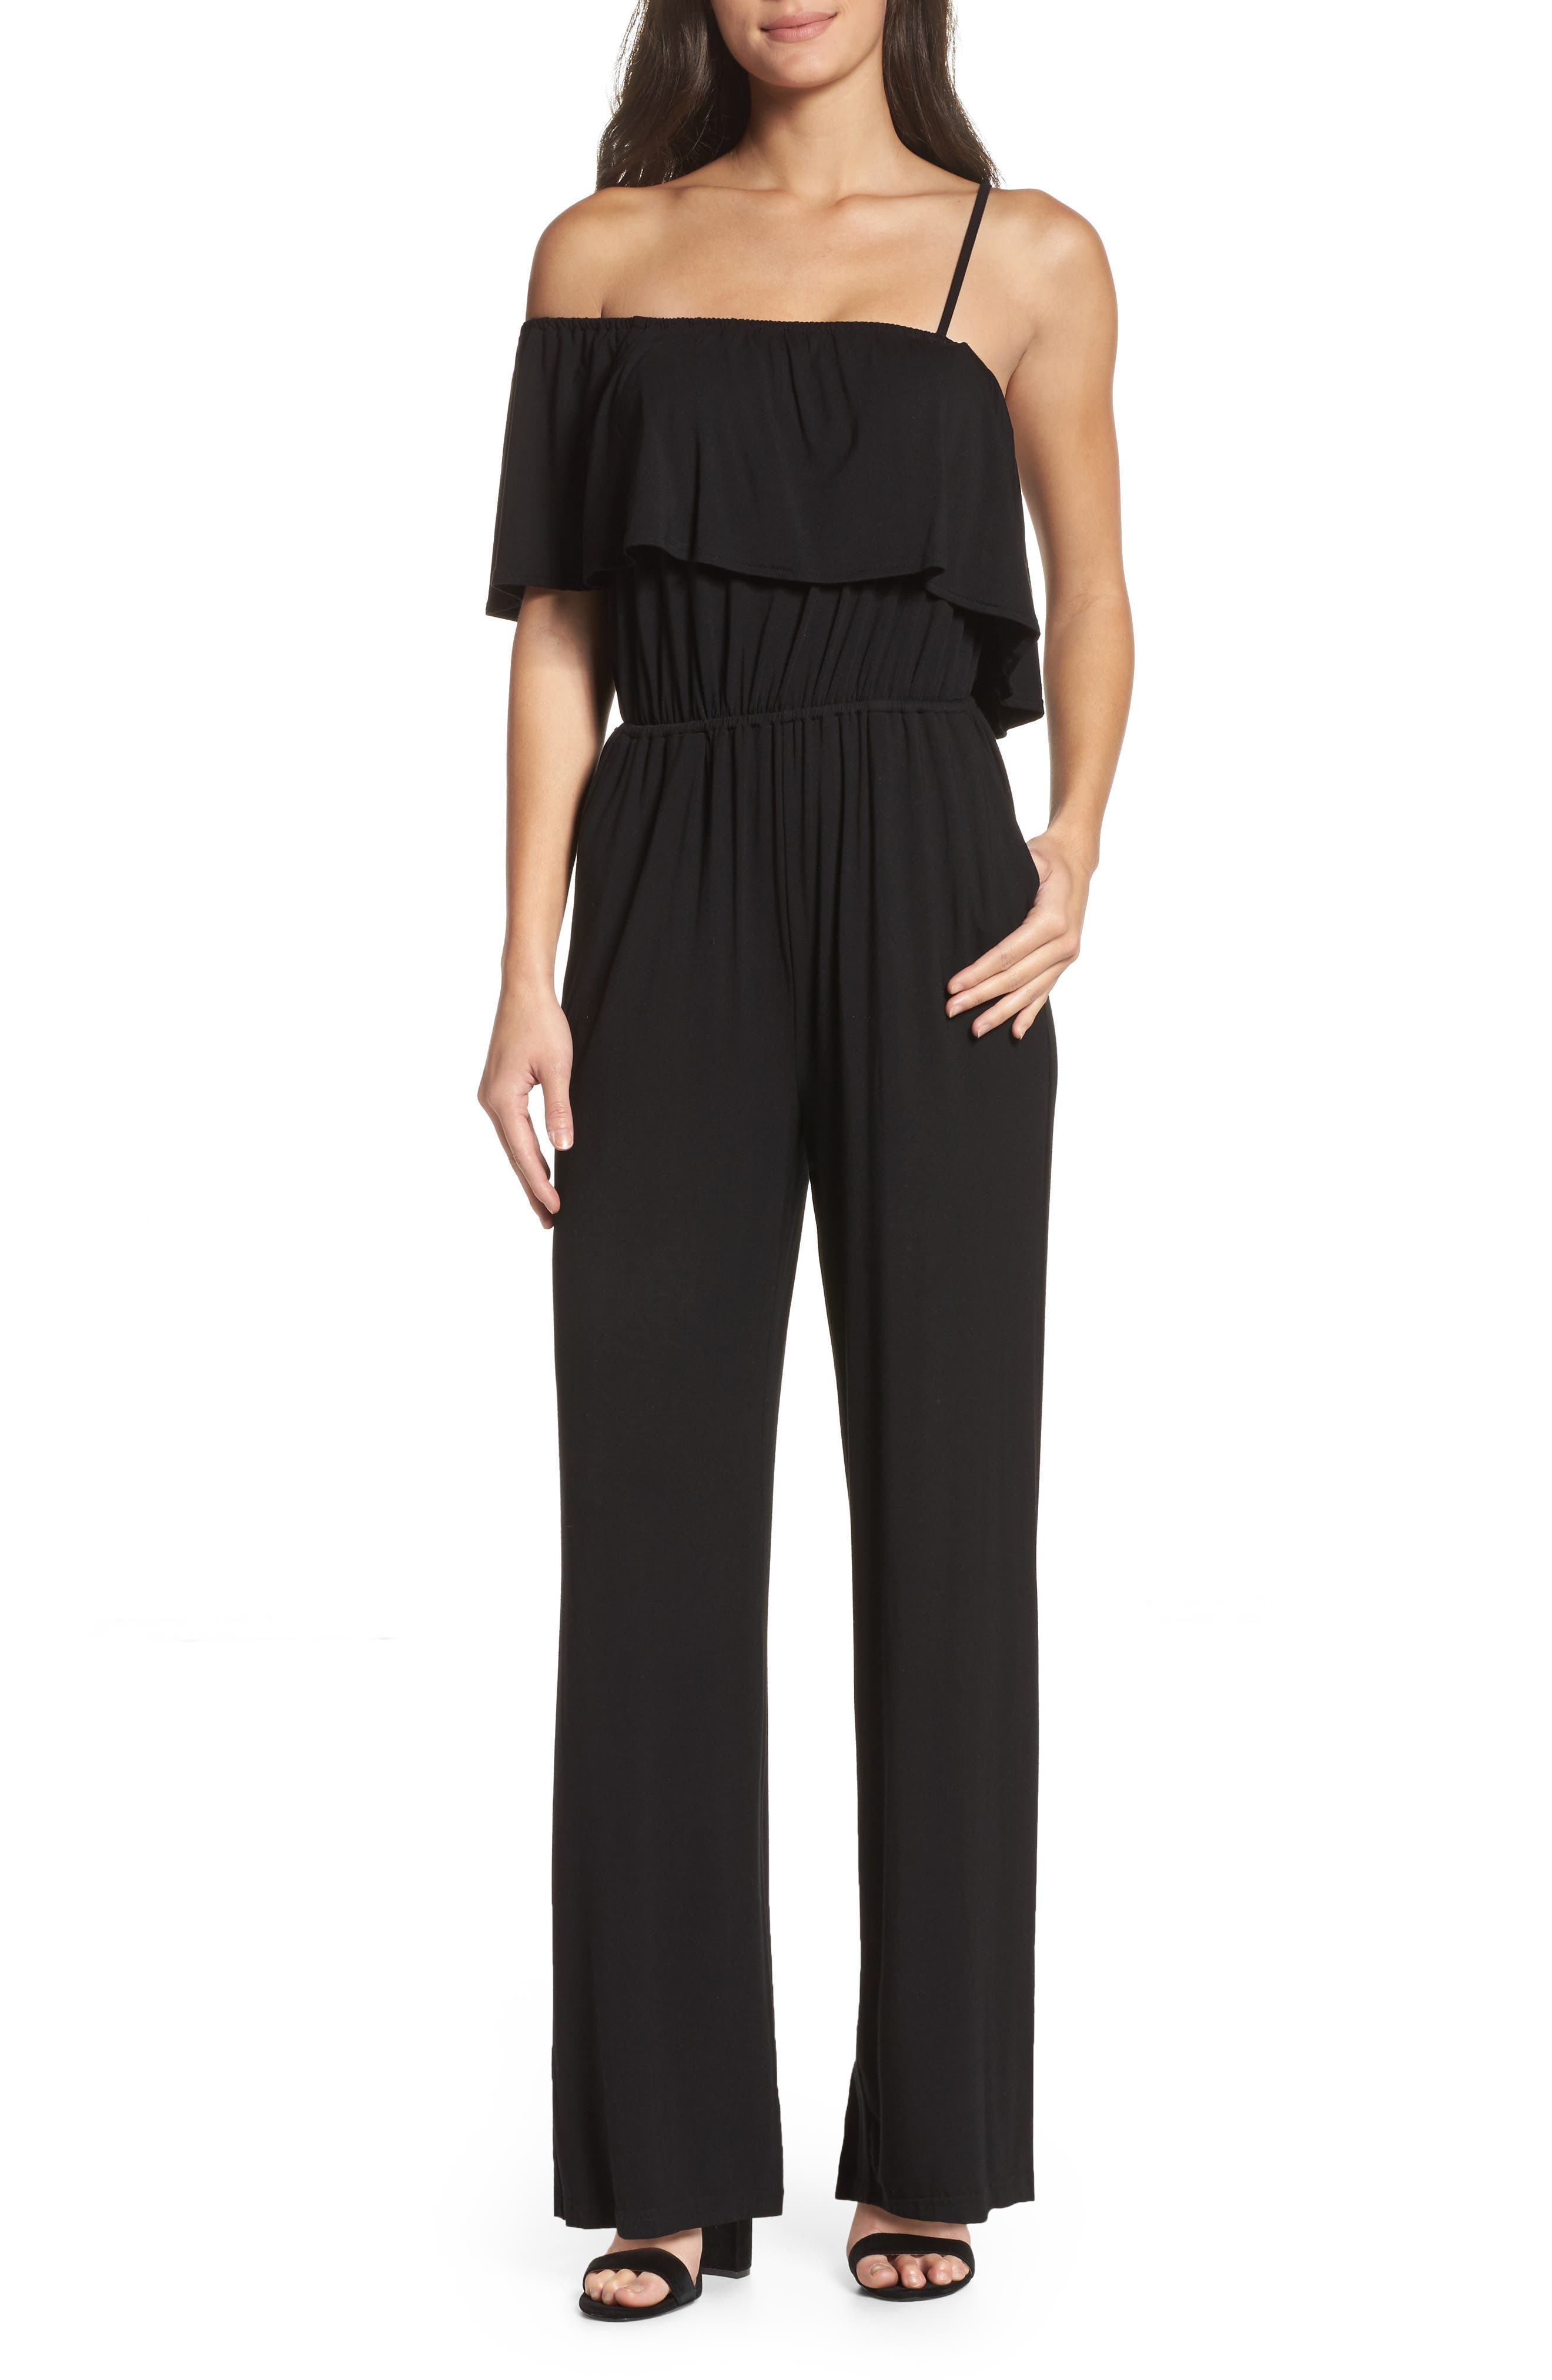 Mayana Jumpsuit,                         Main,                         color, 001